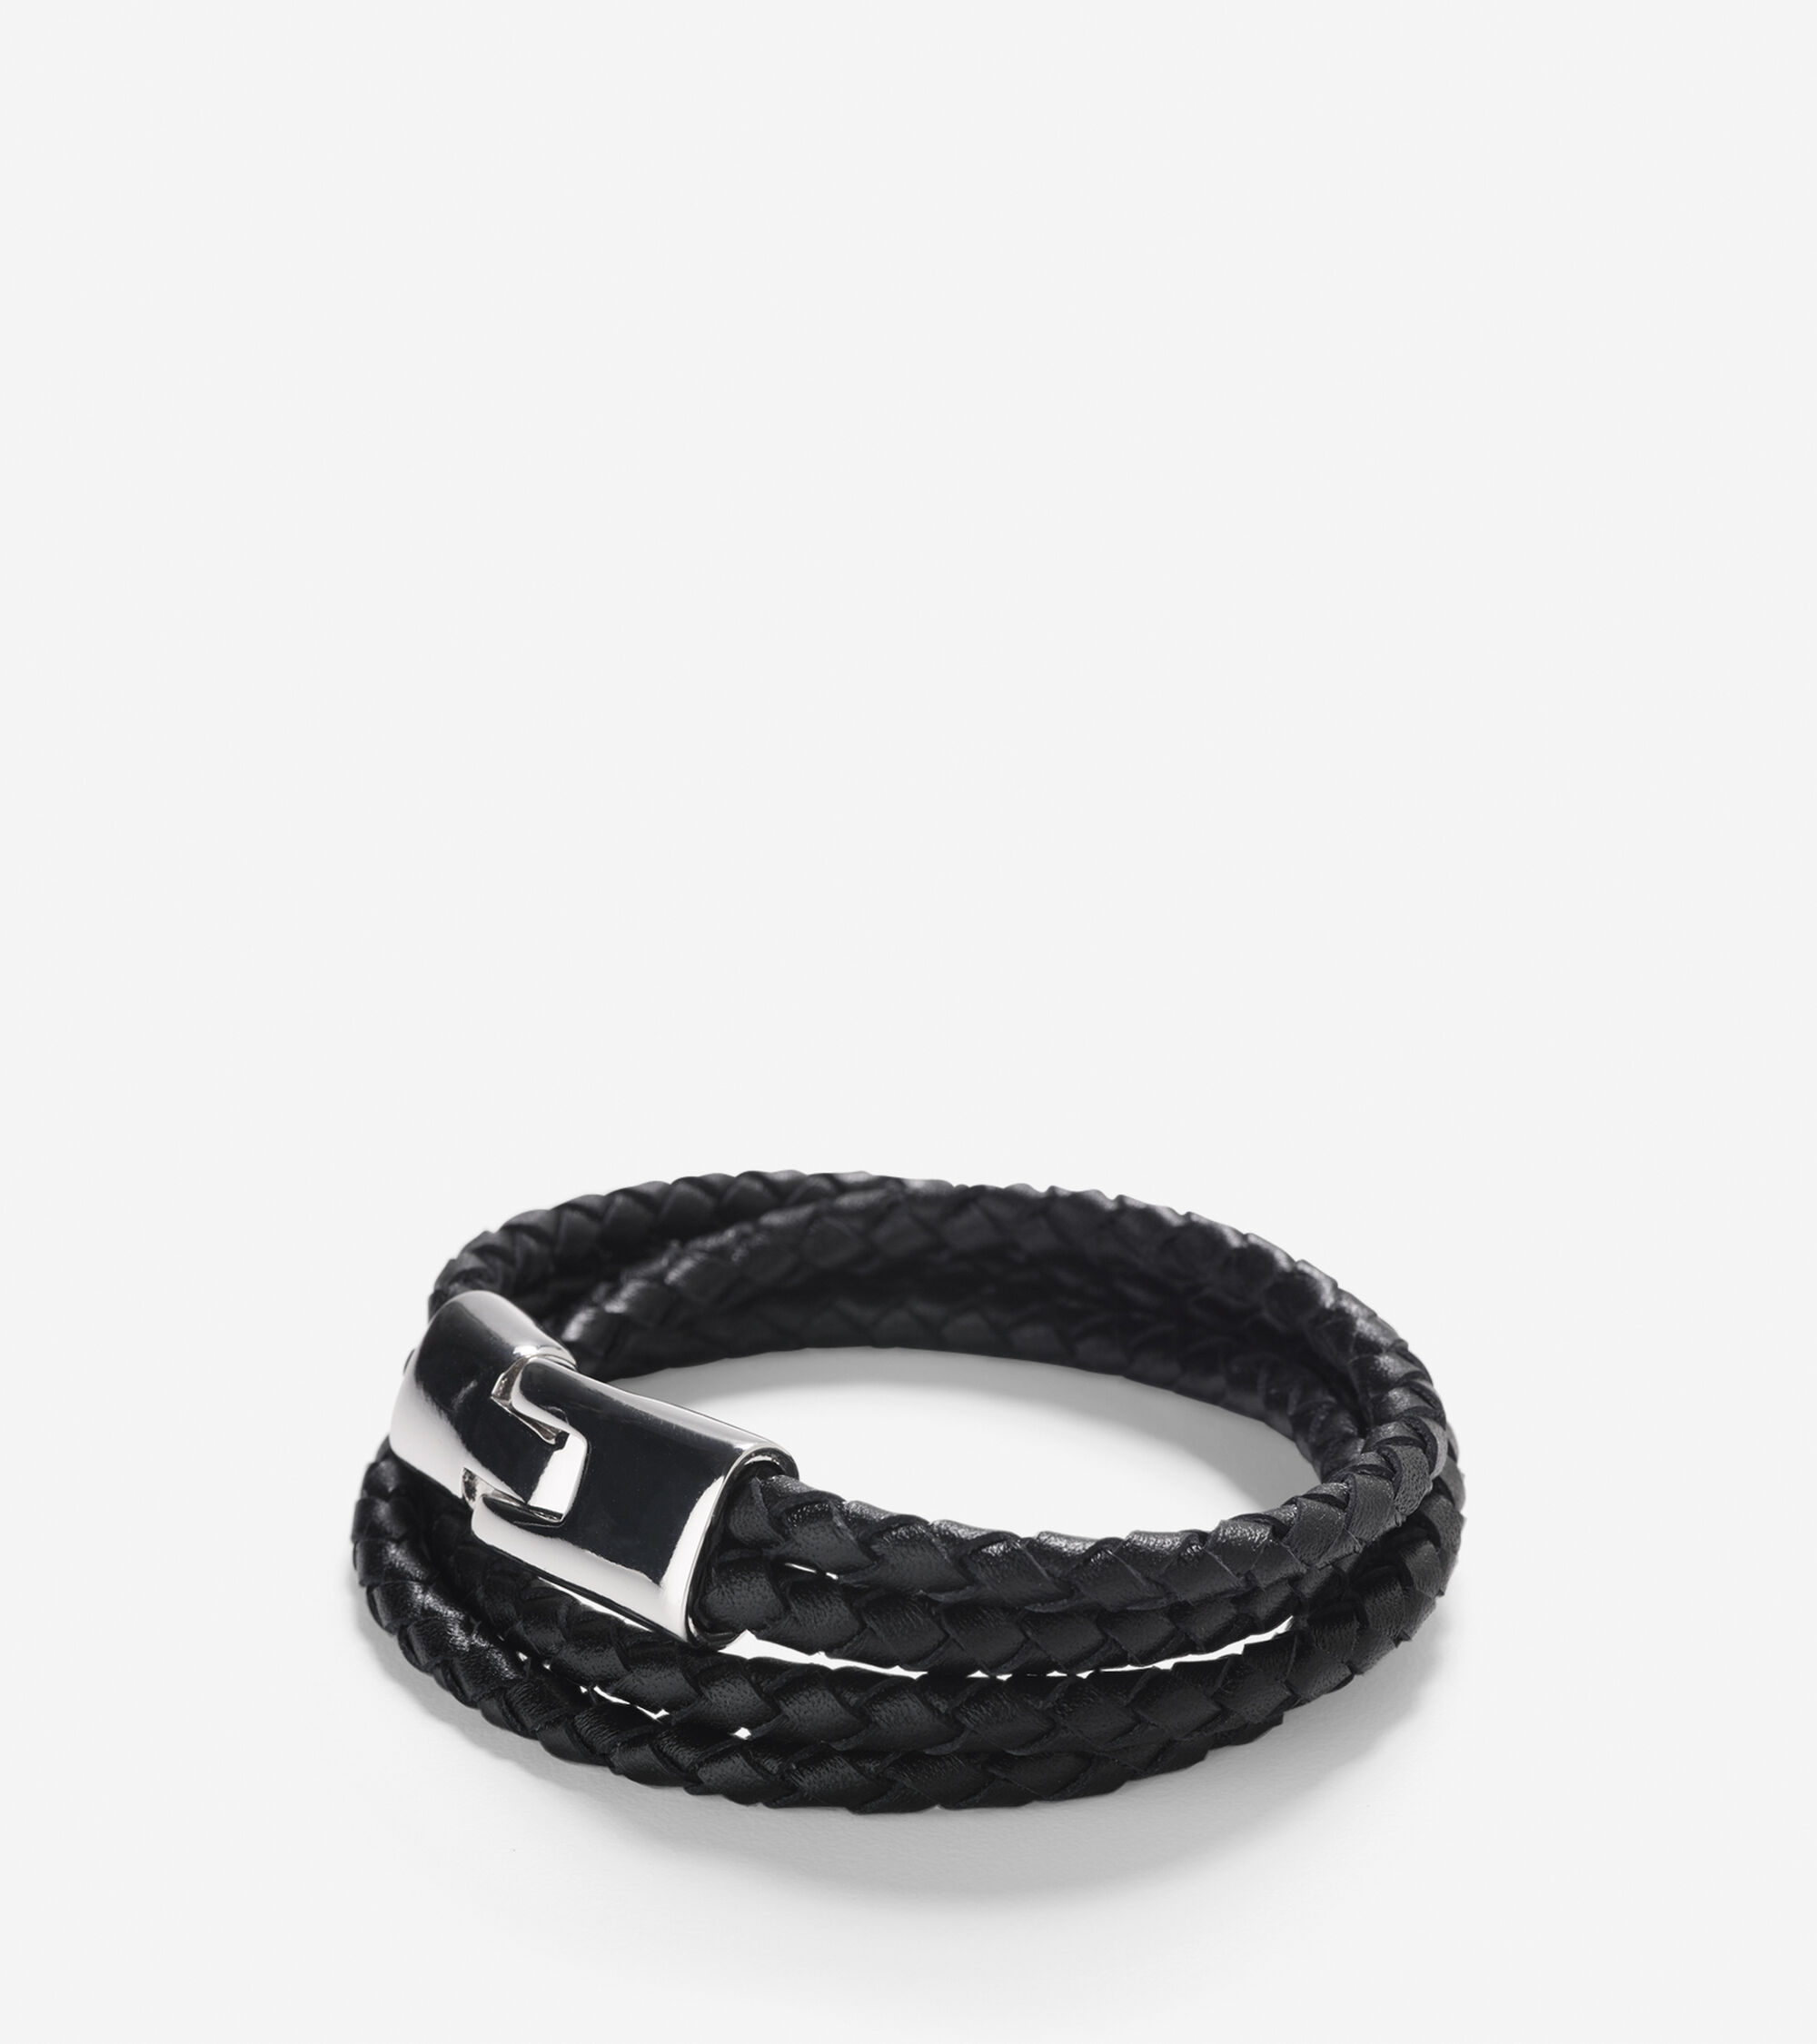 Accessories > Braided Leather Strap Bracelet With Magnet Closure